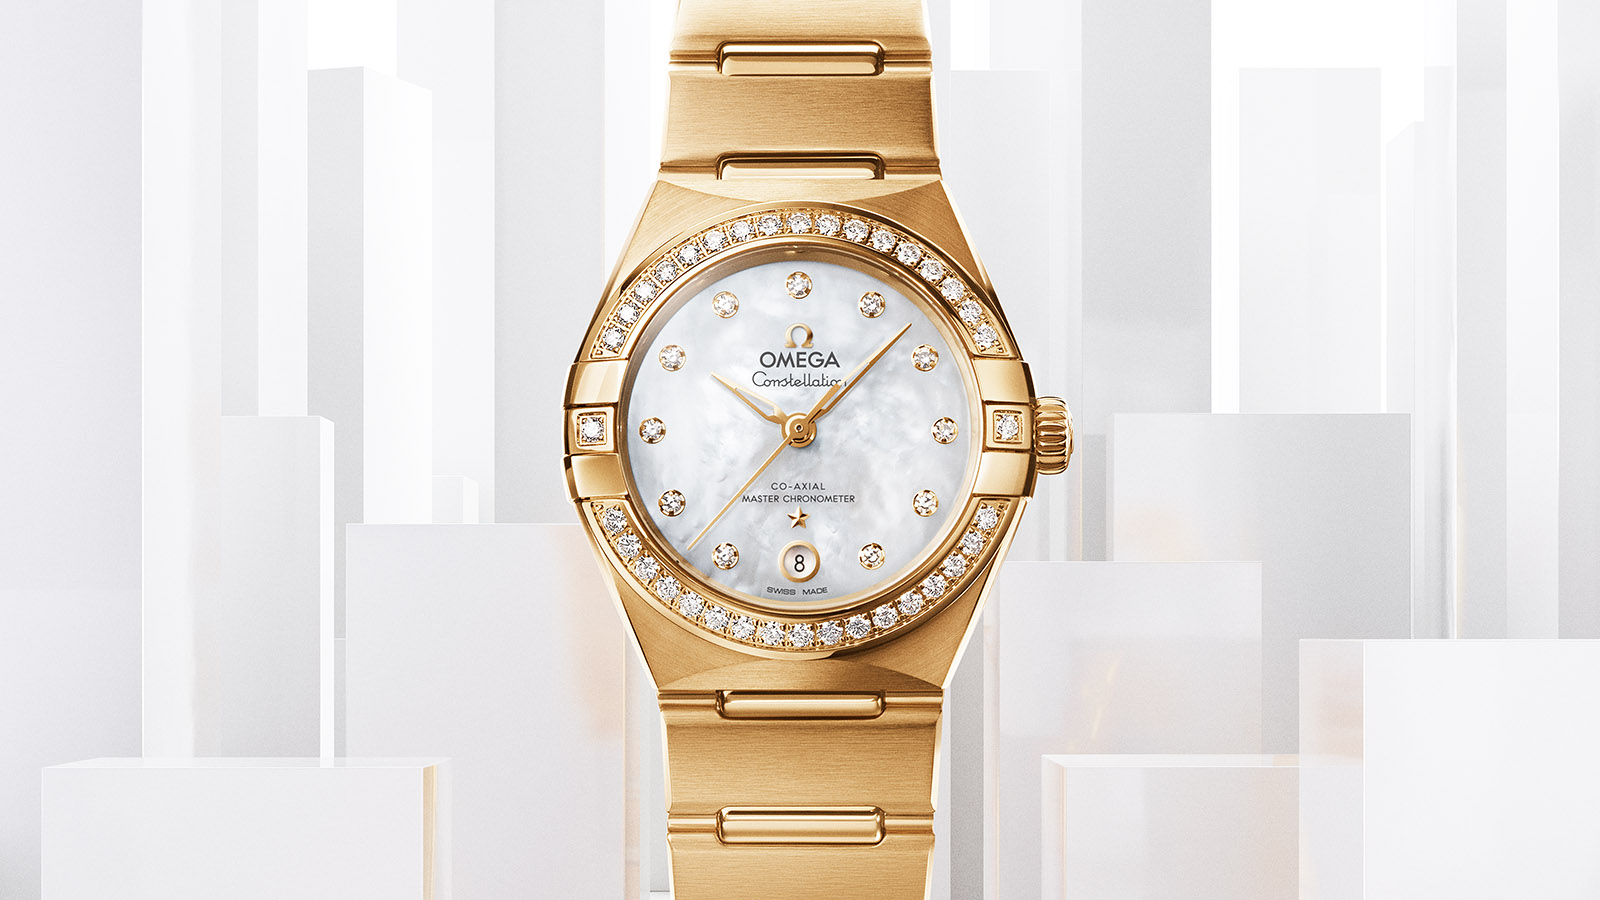 The gold replica watches have white mother-of-pearl dials.